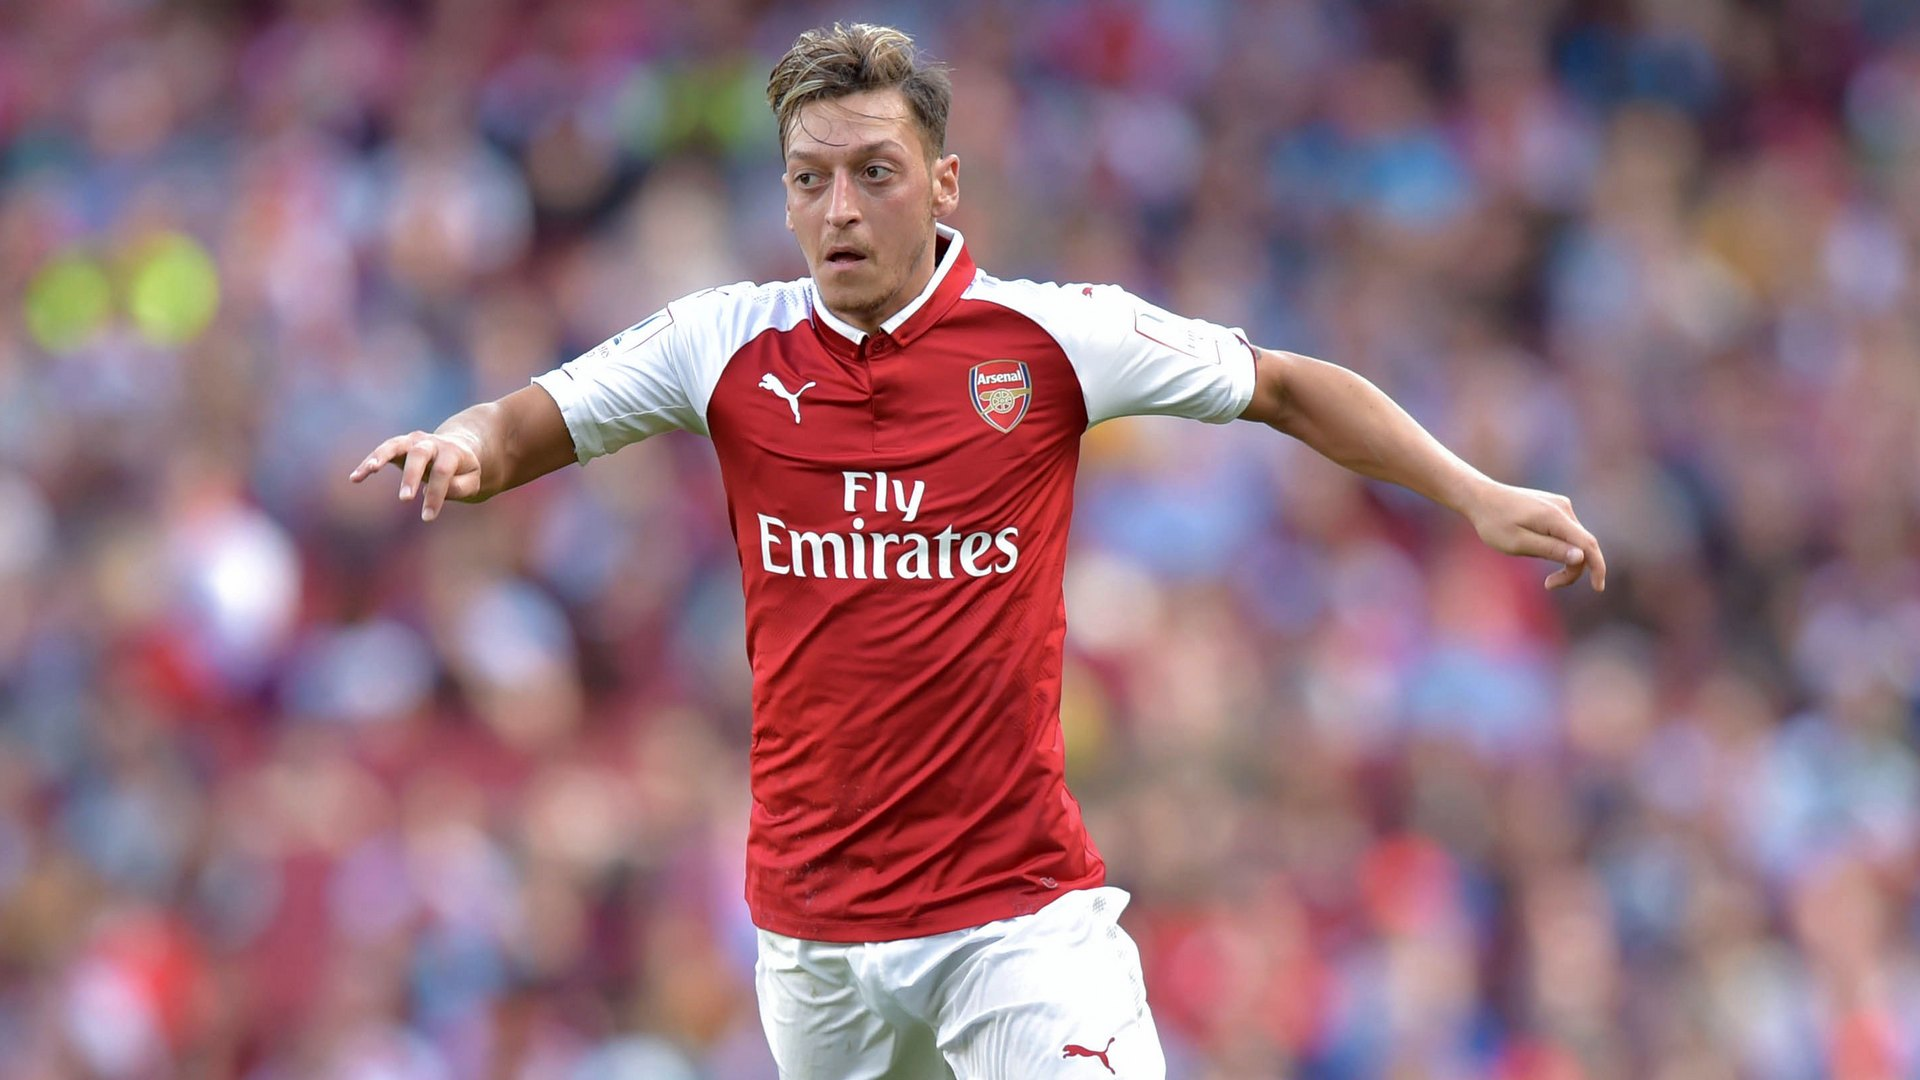 Ozil should choose Bundesliga return over Man Utd move, says Riedle